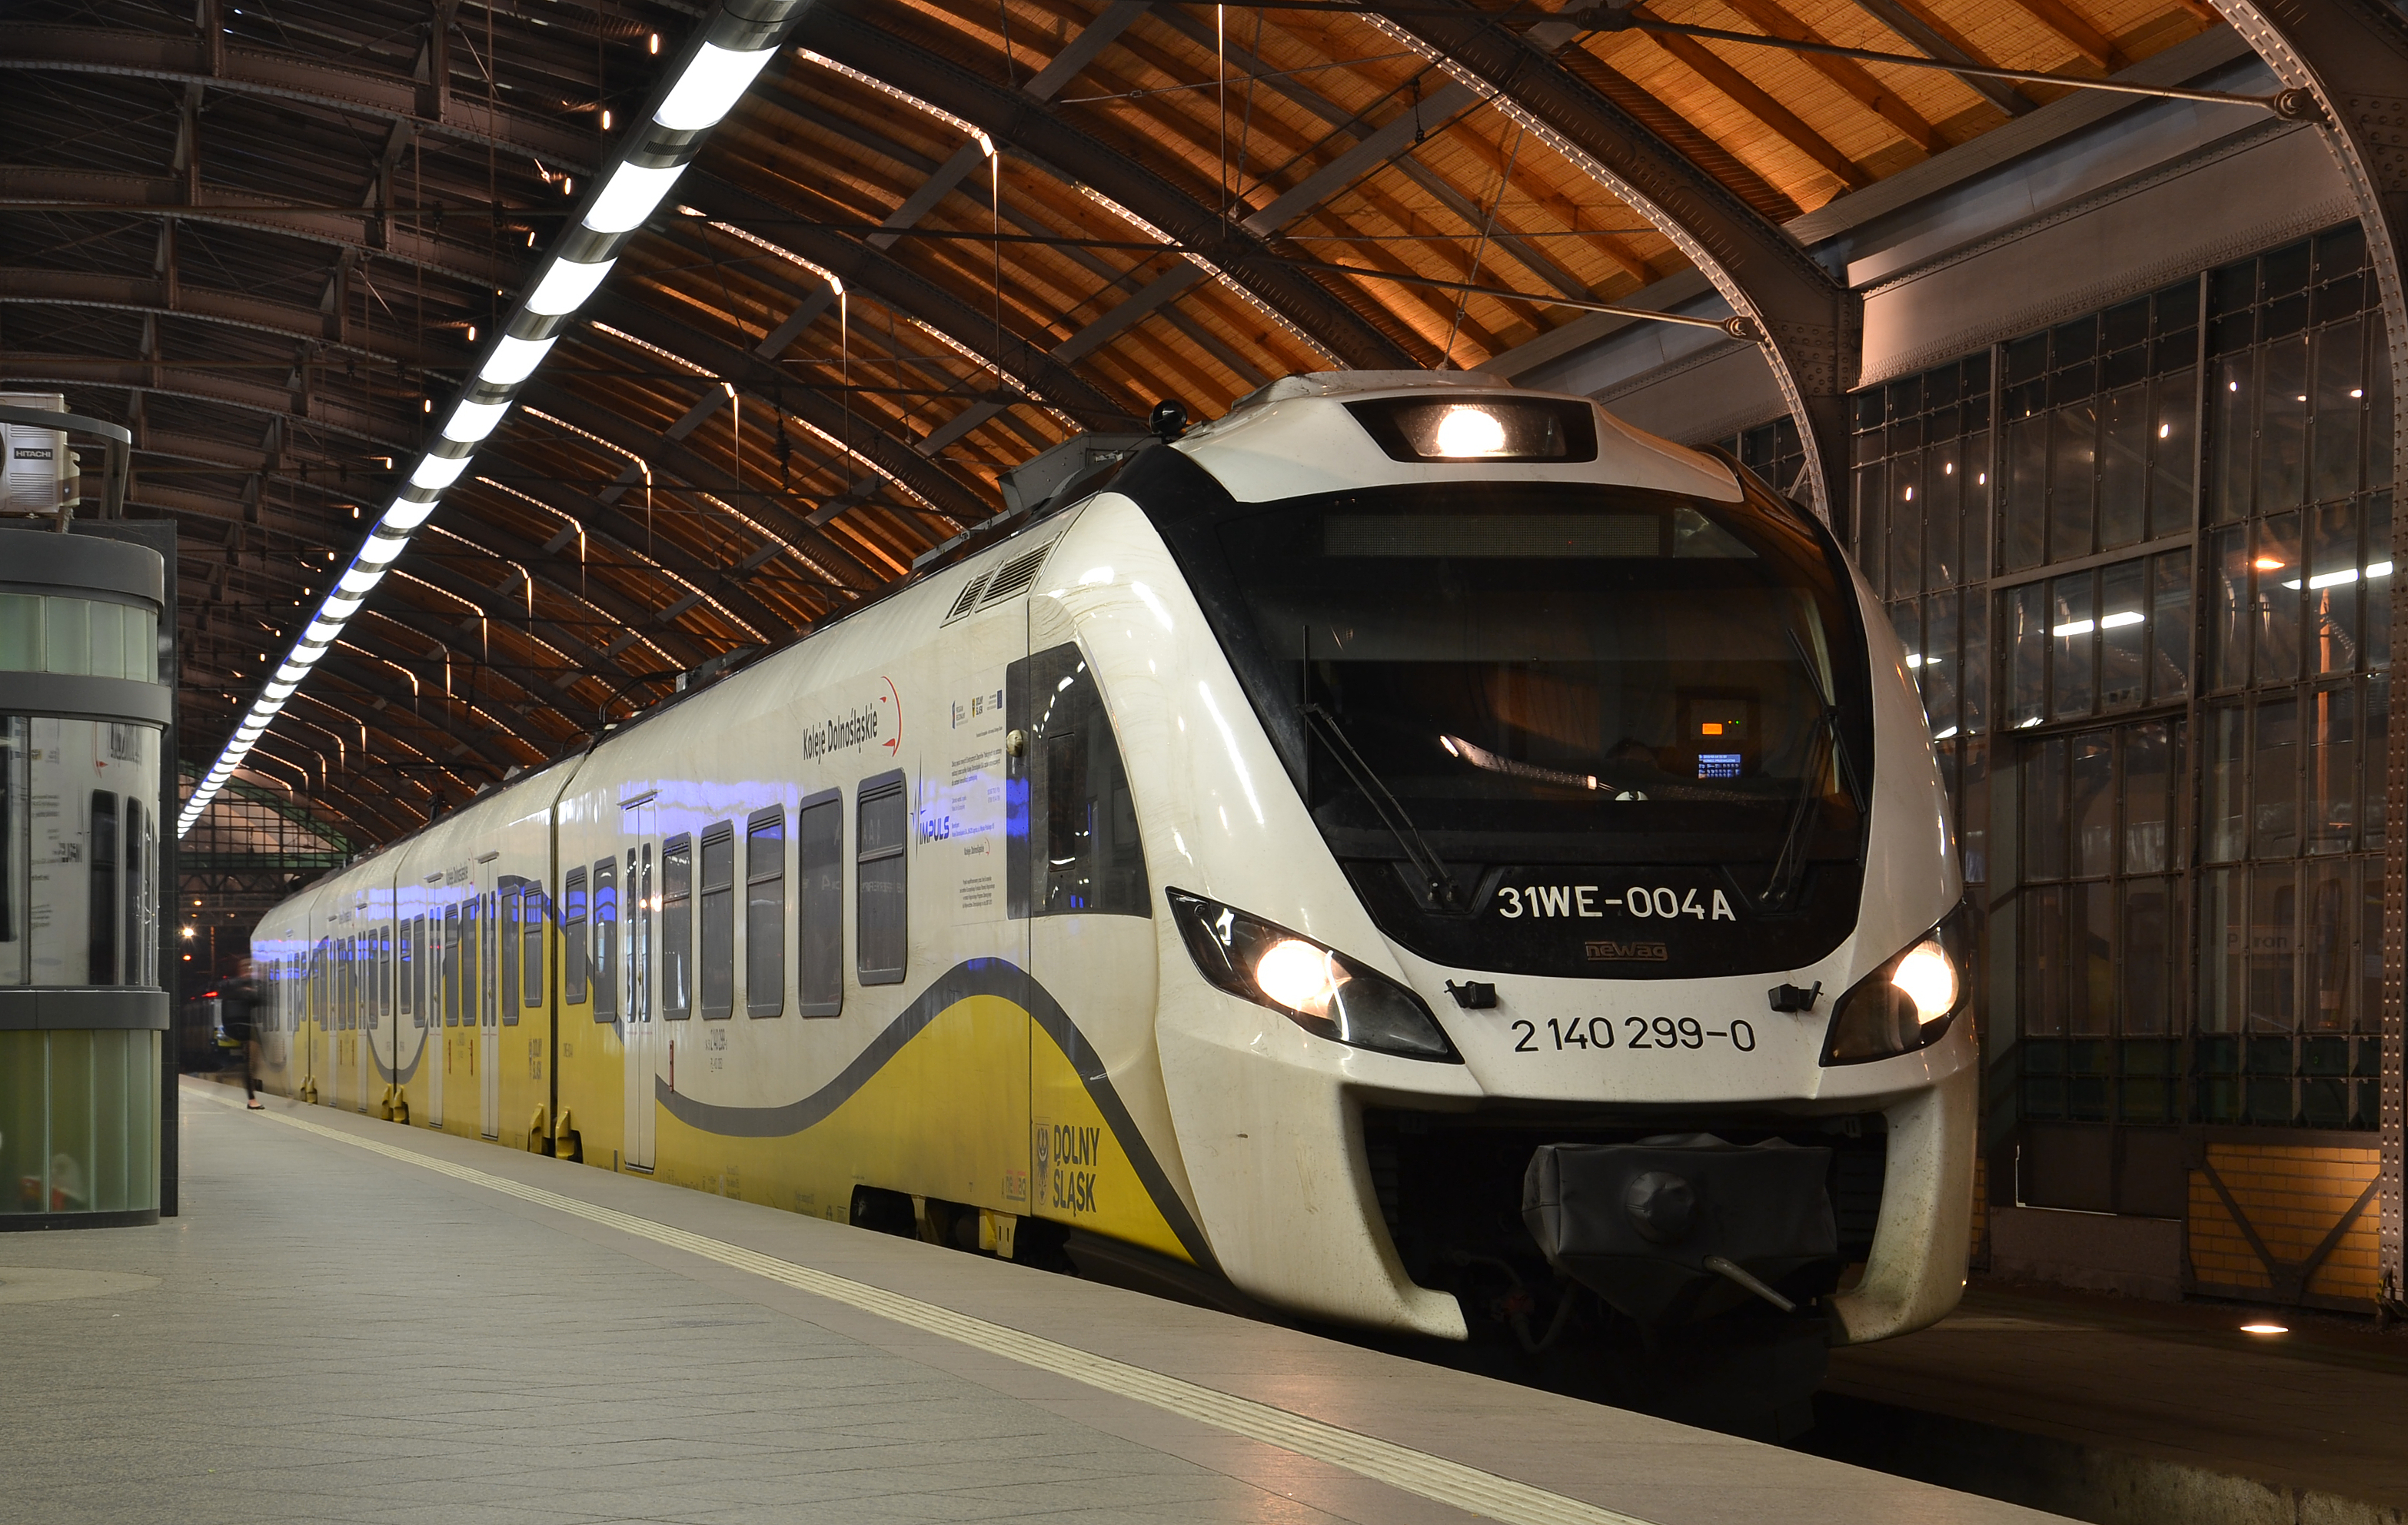 Newag Impuls (31WE-004A) - Wrocław (Breslau)